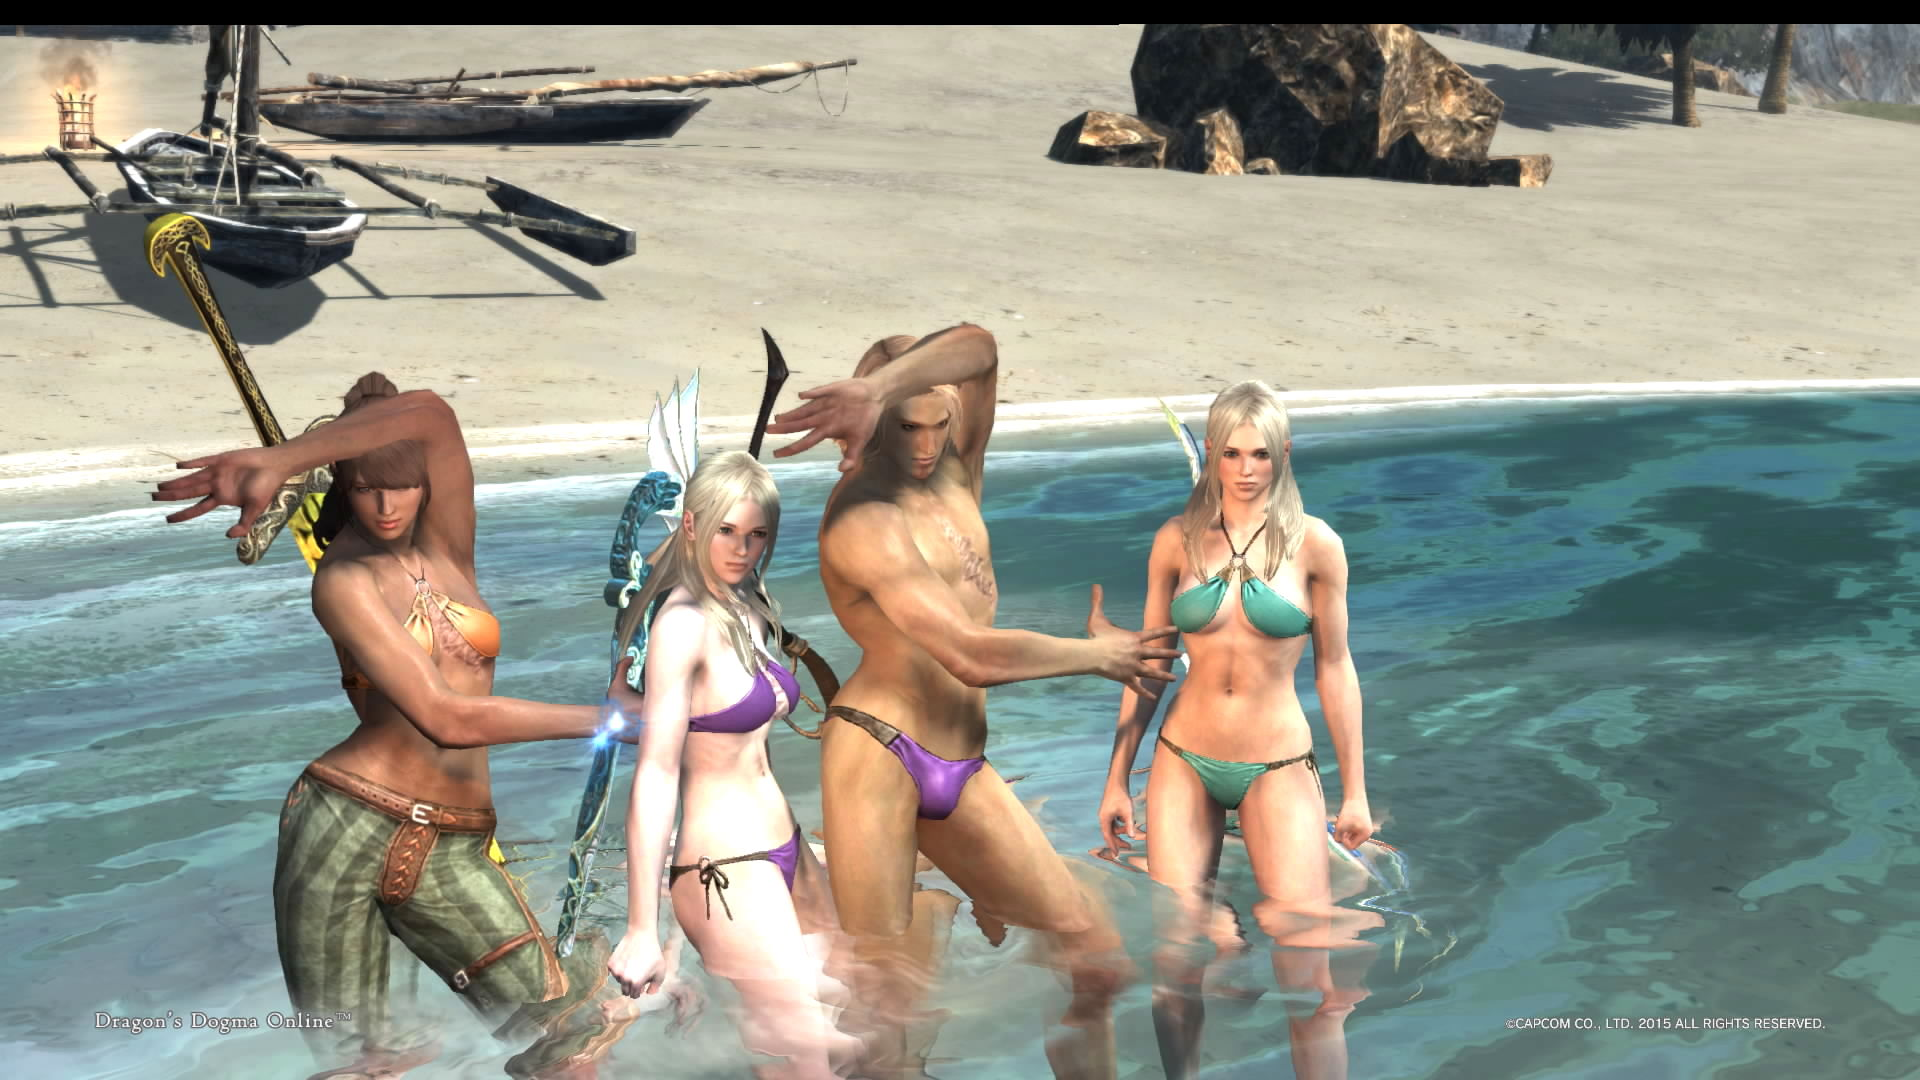 Dragons Dogma Online__32A